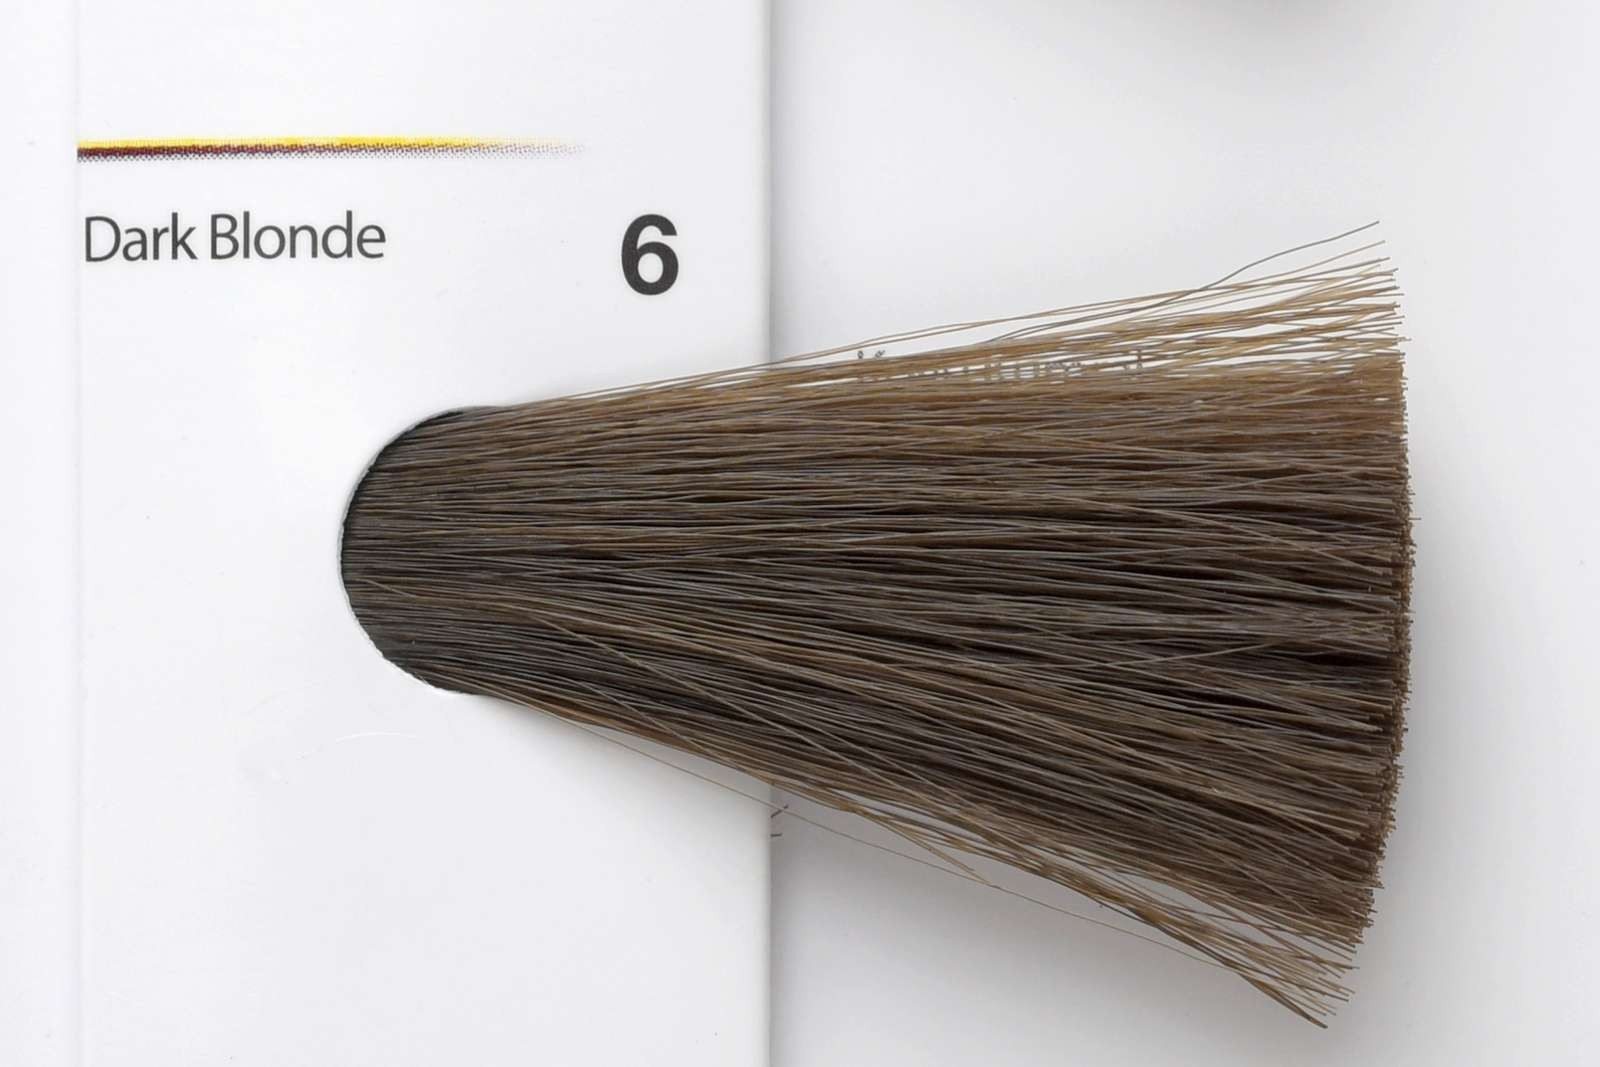 6 - Dark Blonde-swatch